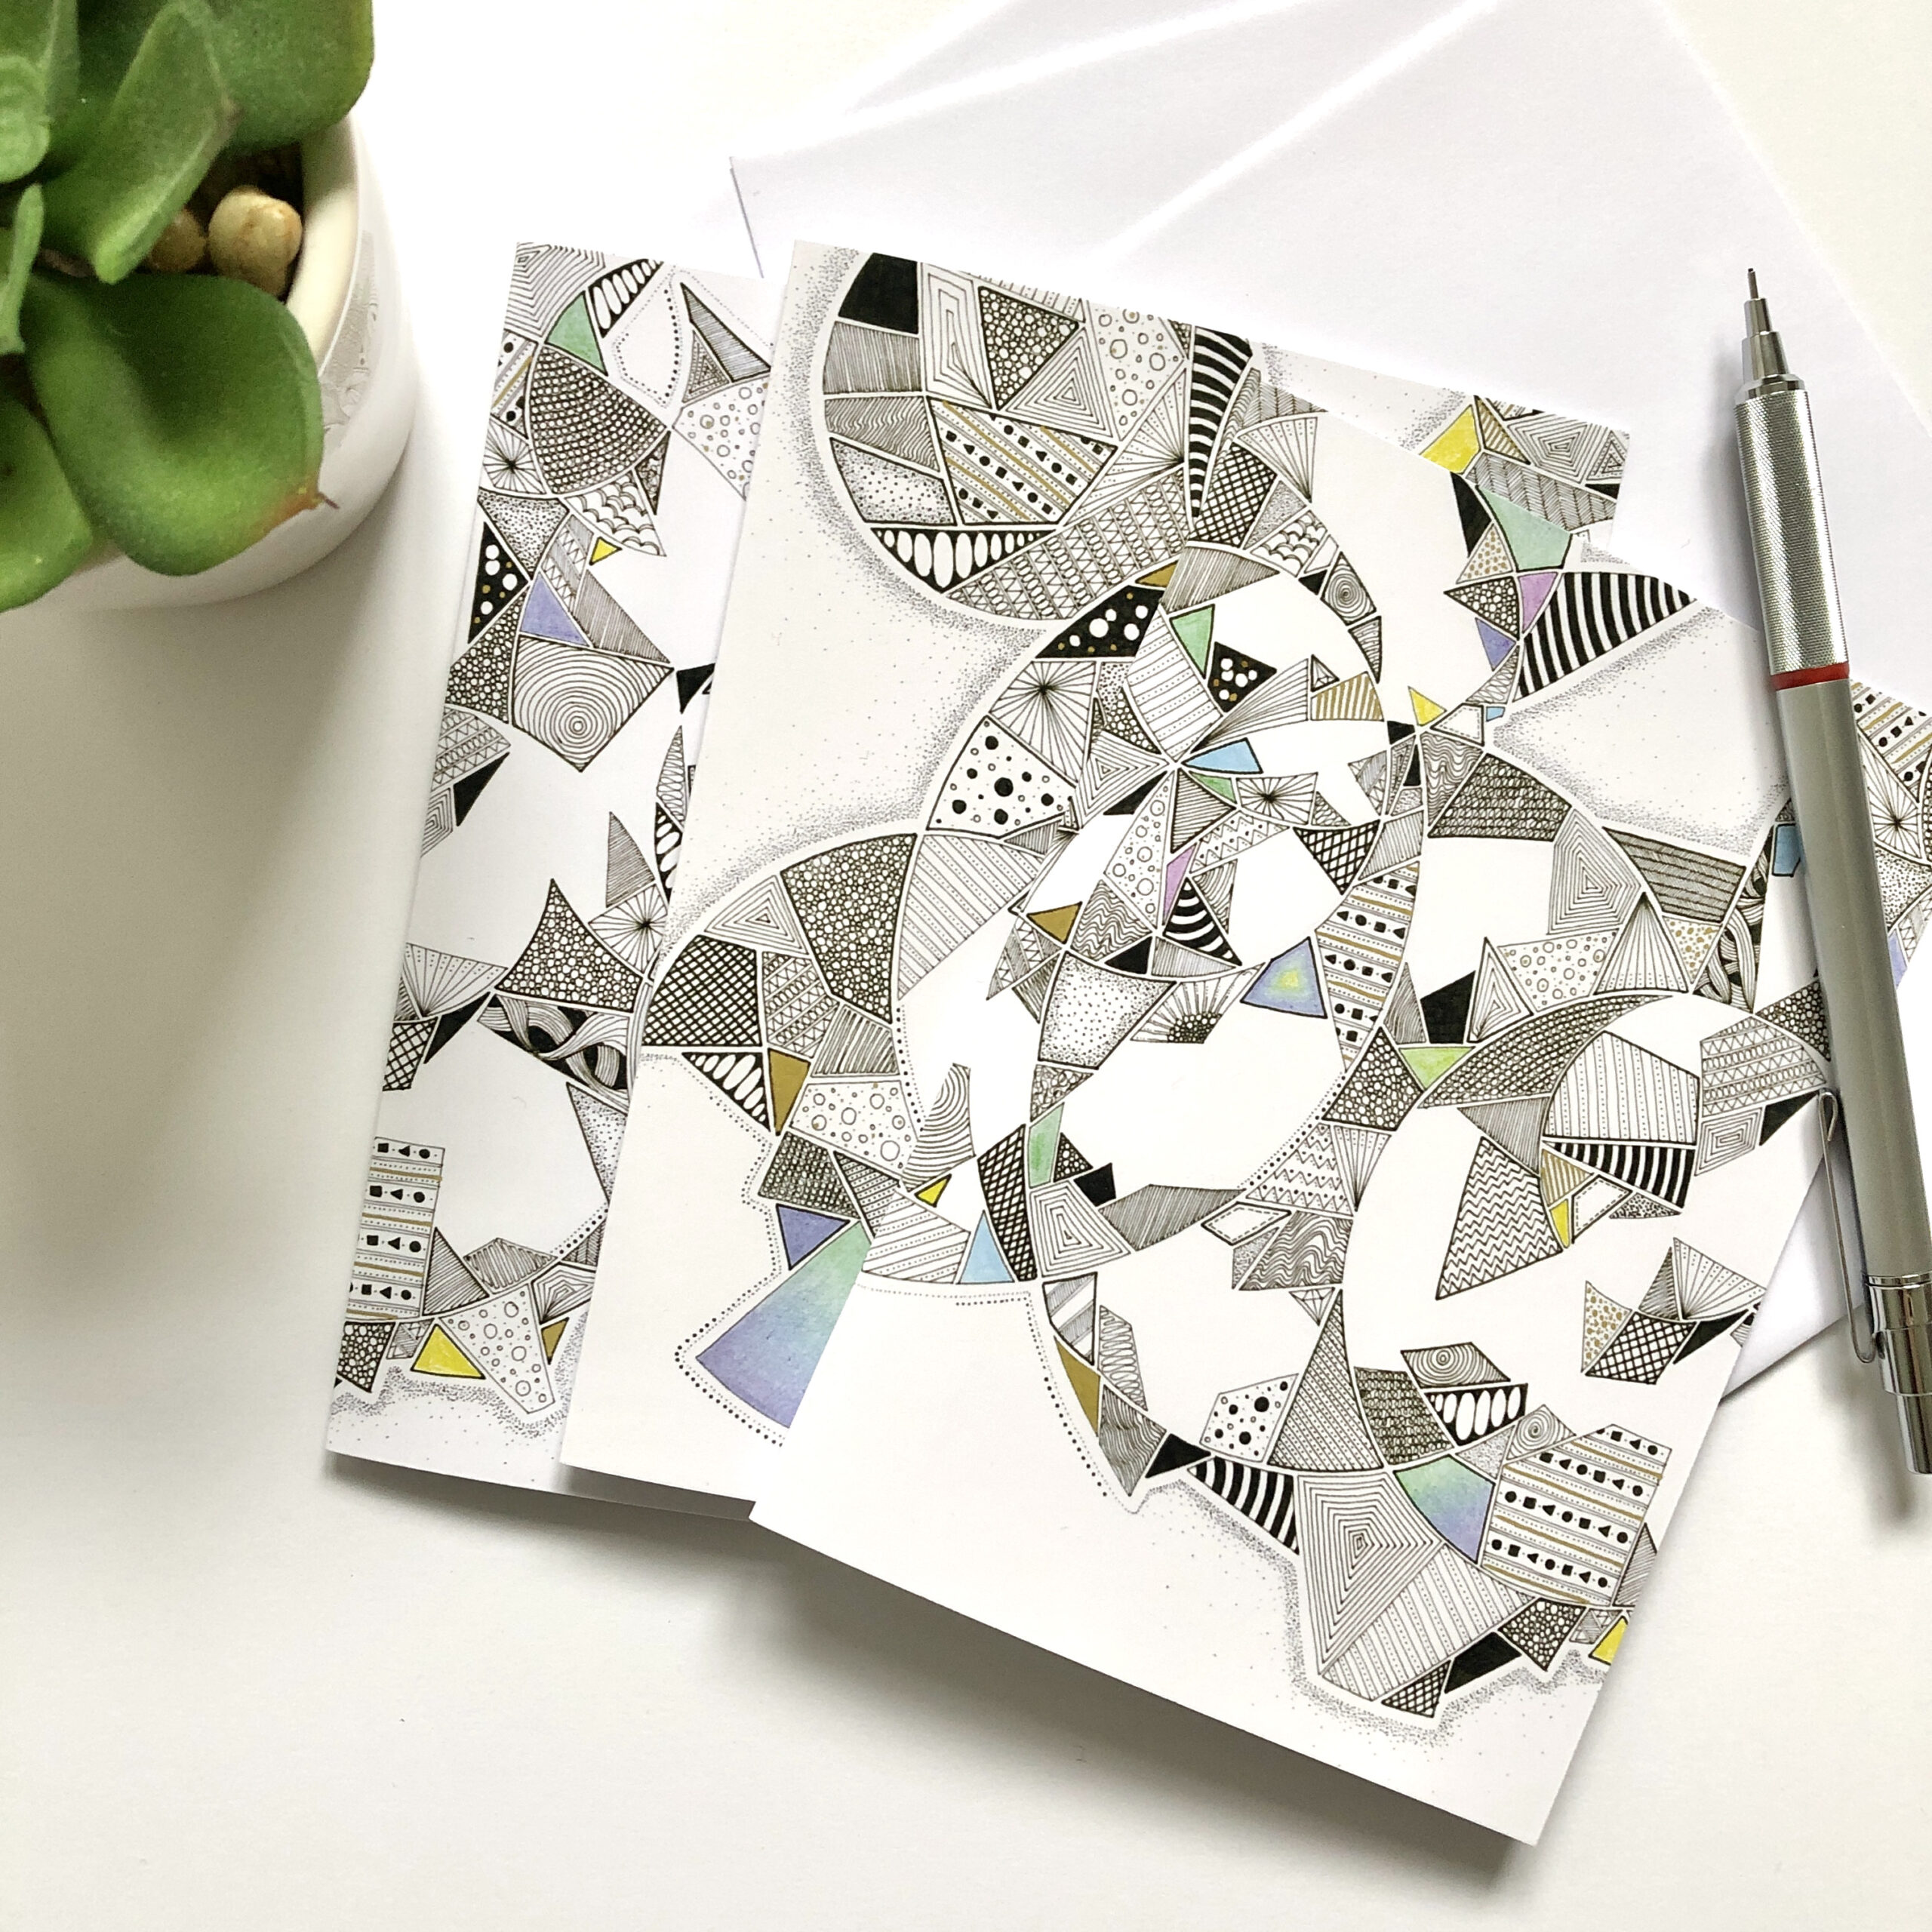 Set of 3 abstract art notecards with an aerial view of an indoor plant and a silver pencil